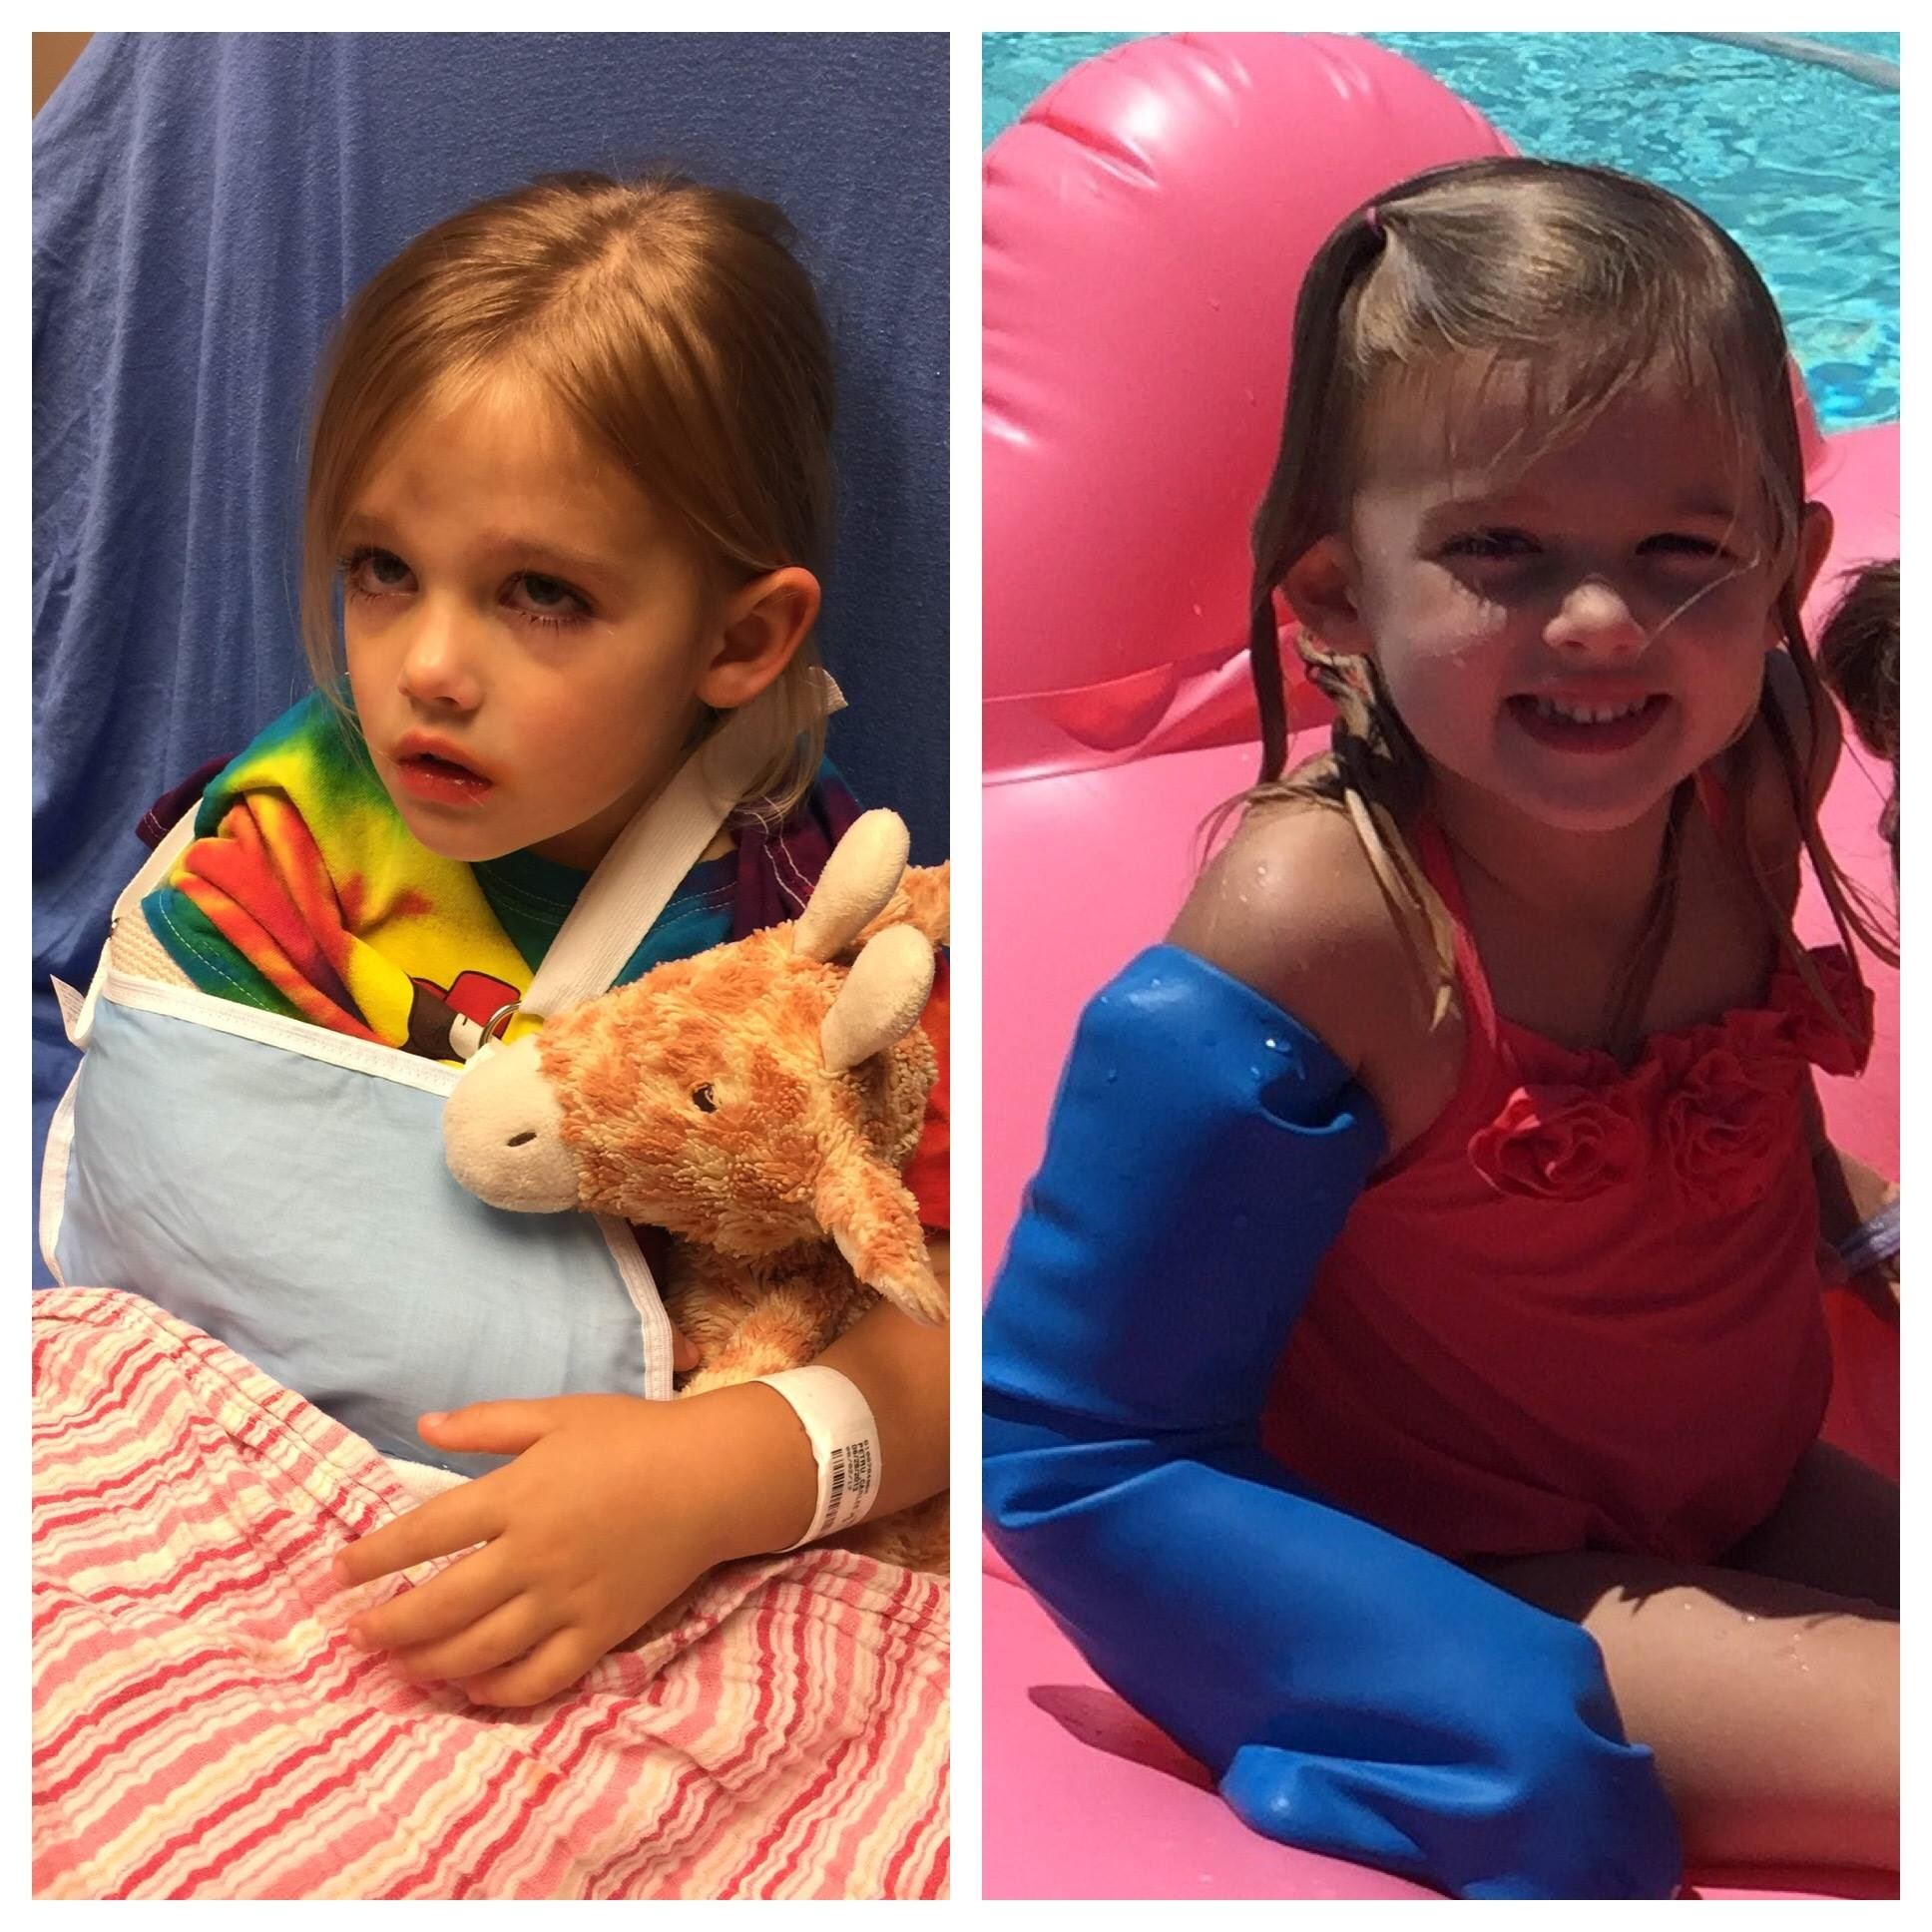 a picture of a child with an arm in a sling and another of her smiling with a bloccs cast protector